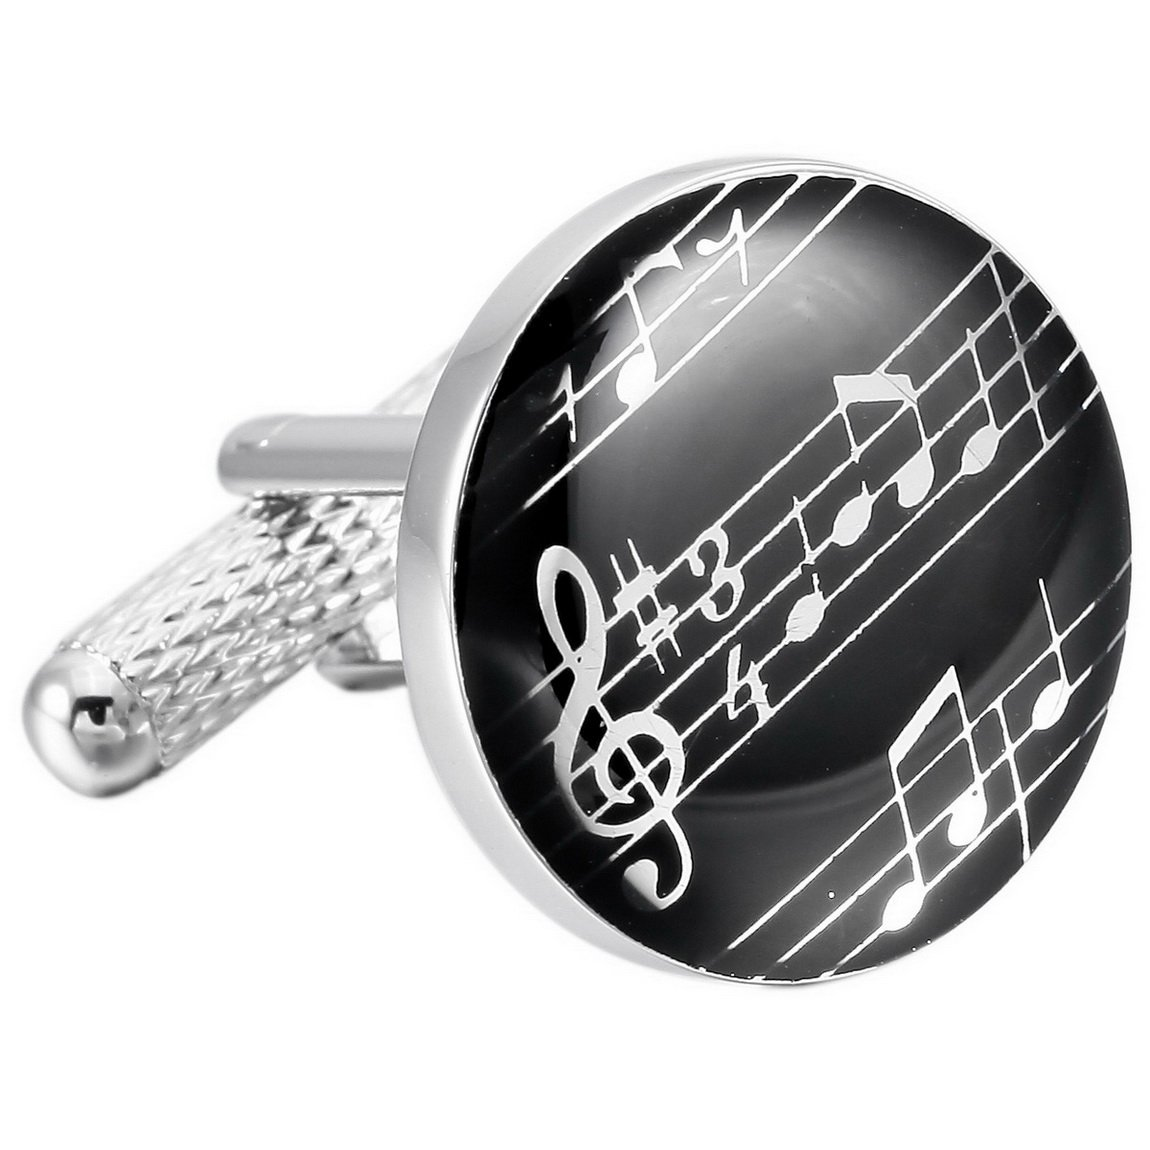 INBLUE Men's 2PCS Rhodium Plated Enamel Cufflinks Silver Tone Black Music Symbol Shirt Wedding INBLUE Jewelry mnv0562